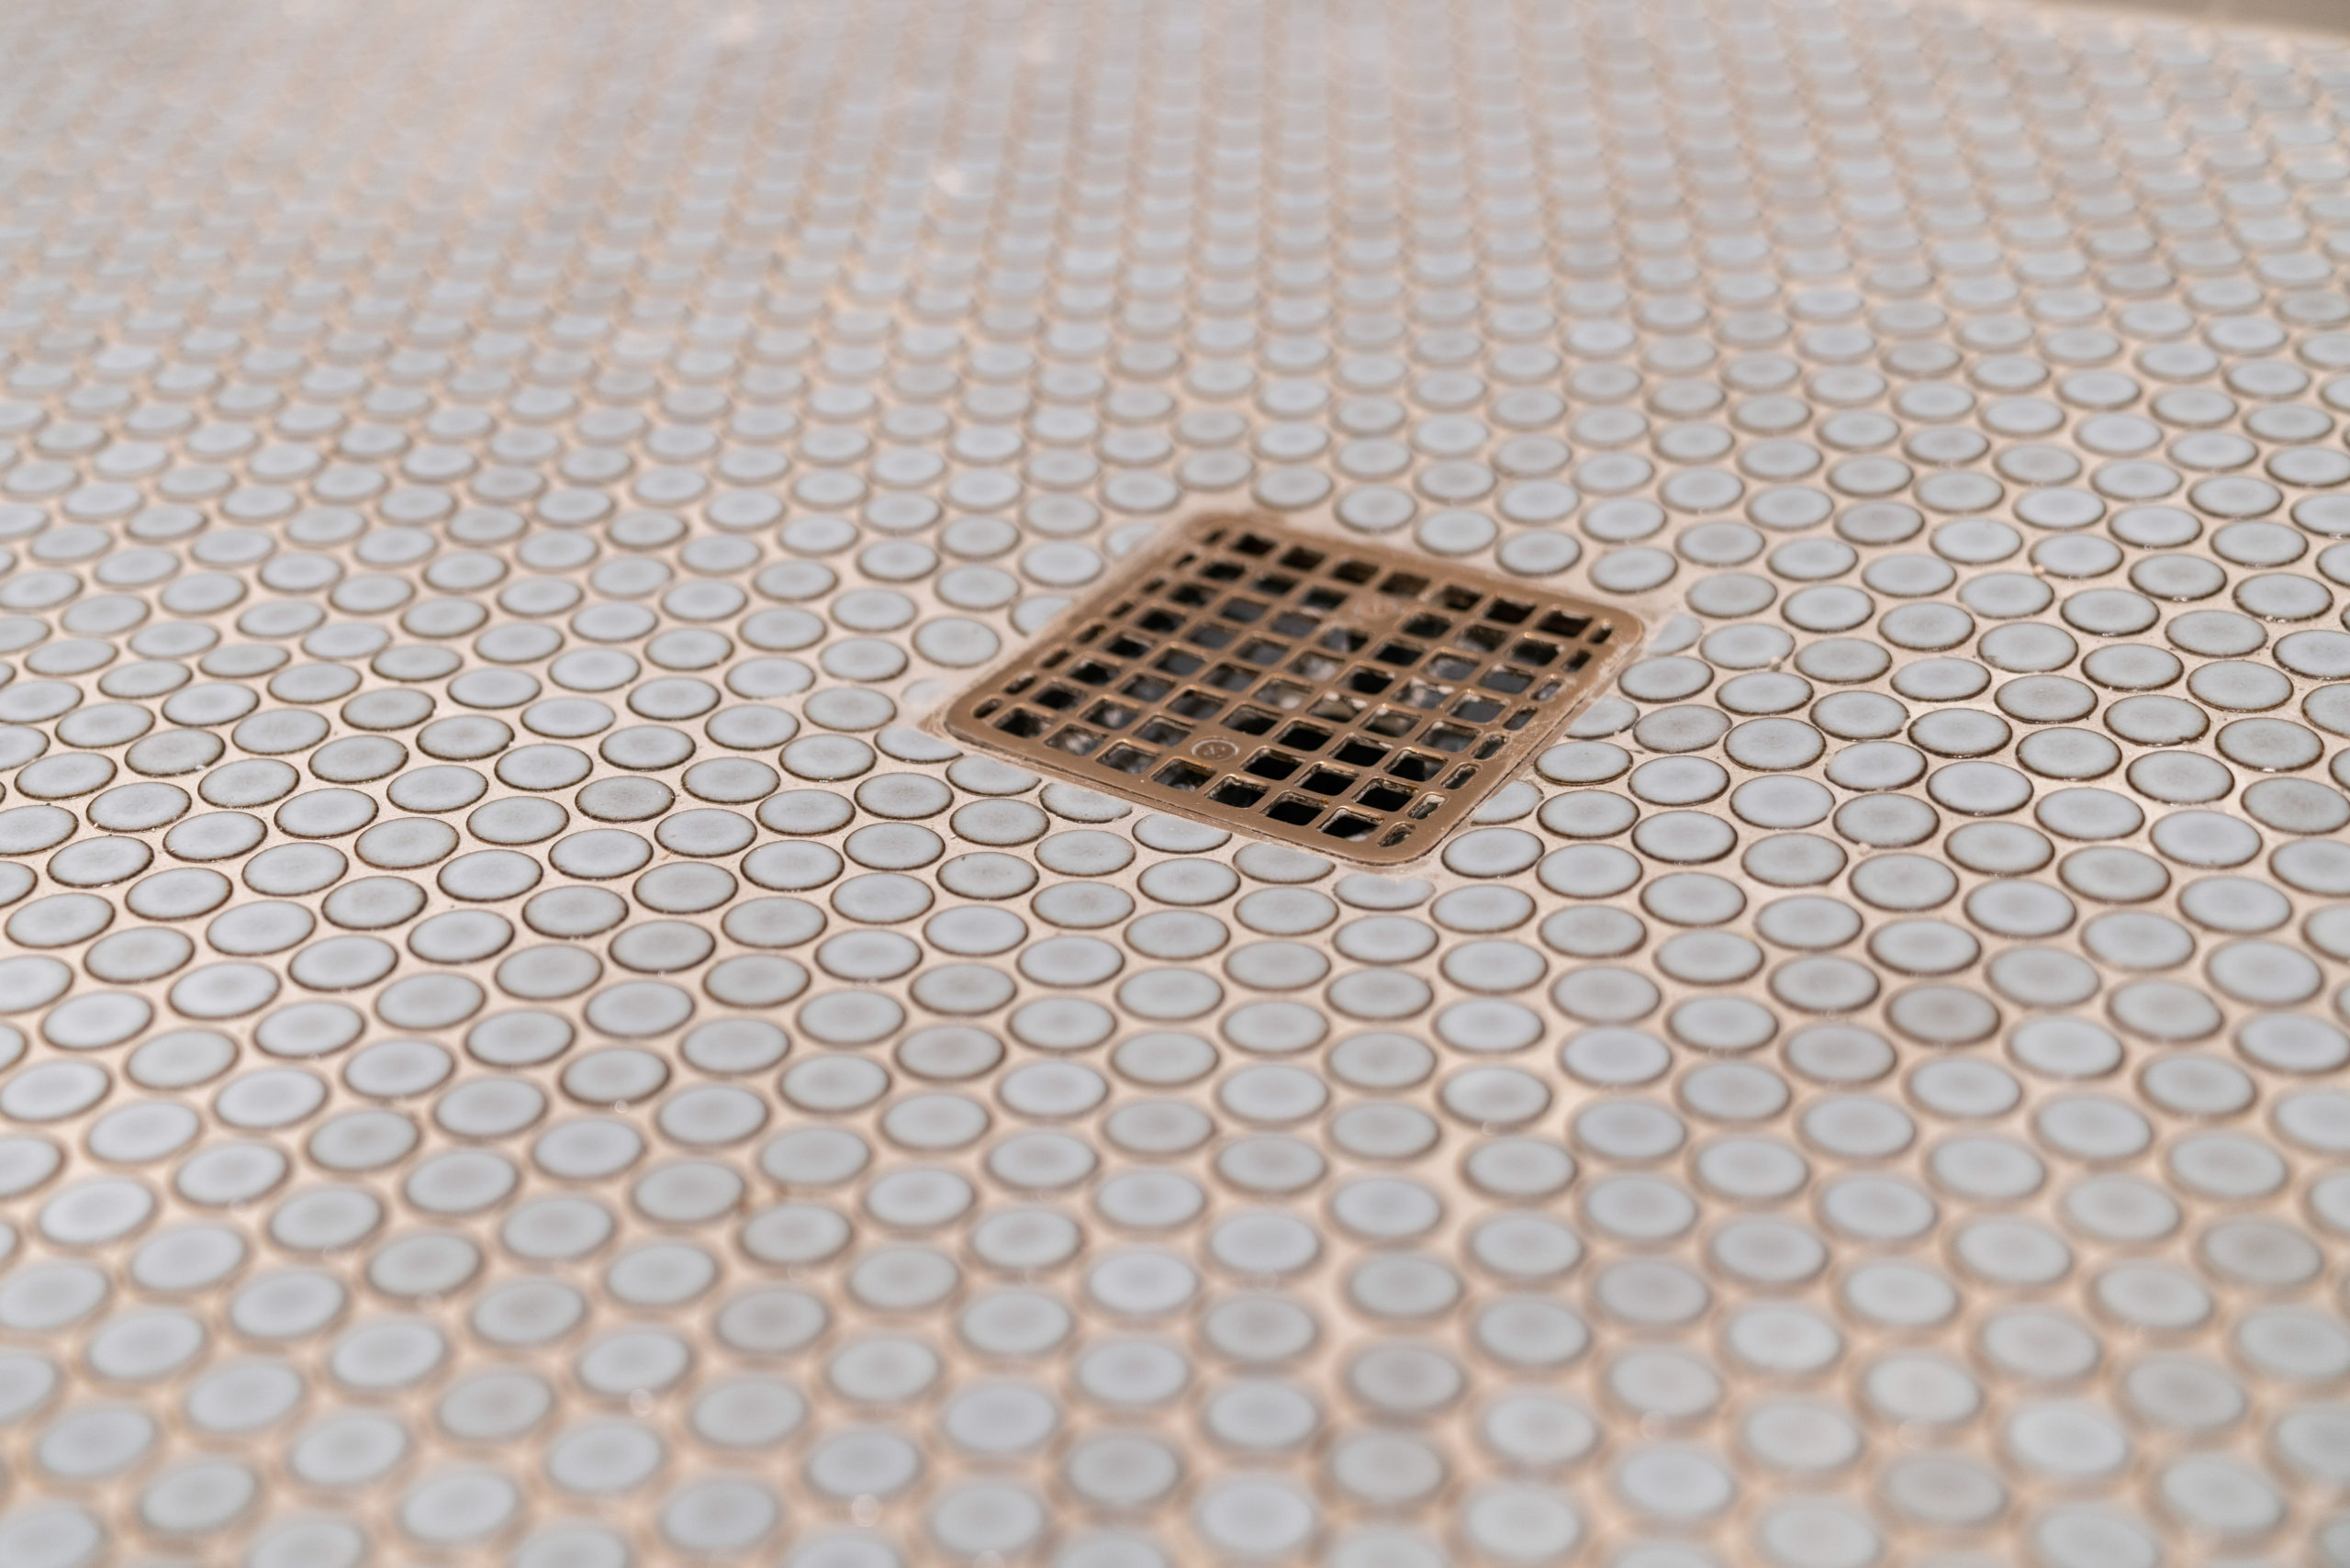 shower floor pebble tile with gold drain cover